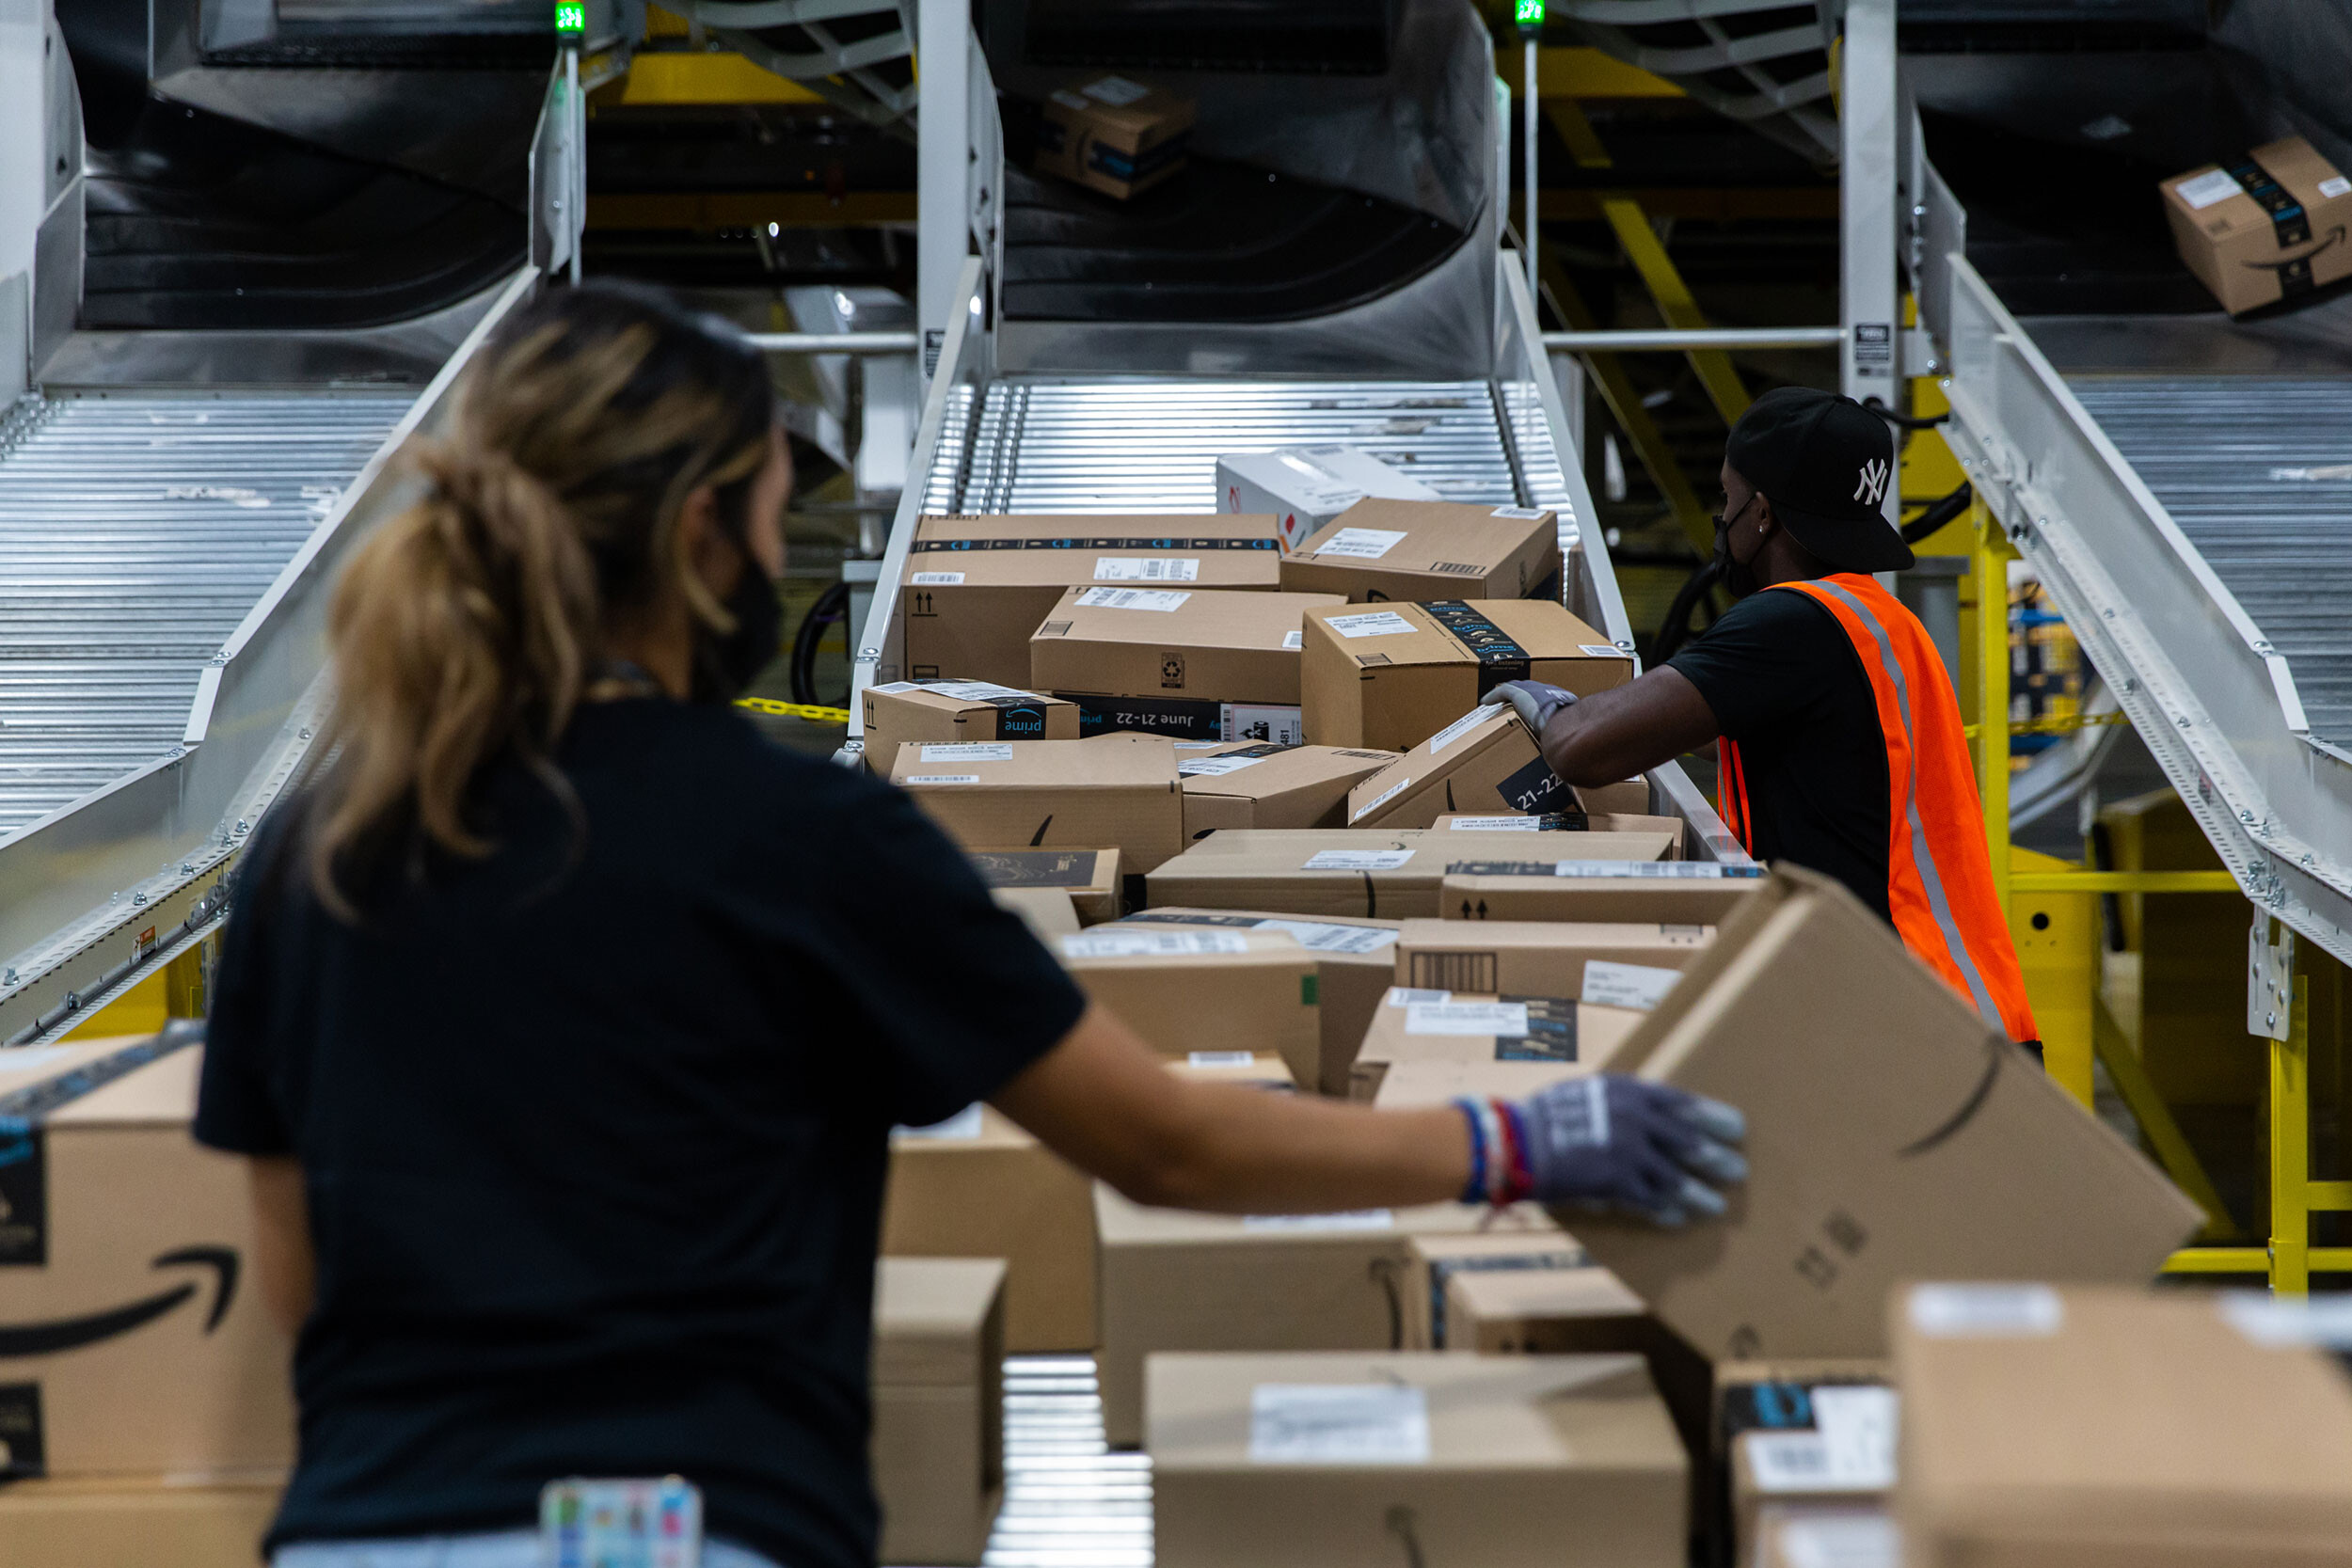 Amazon will hire 125,000 workers, dangling $3,000 bonuses for some jobs